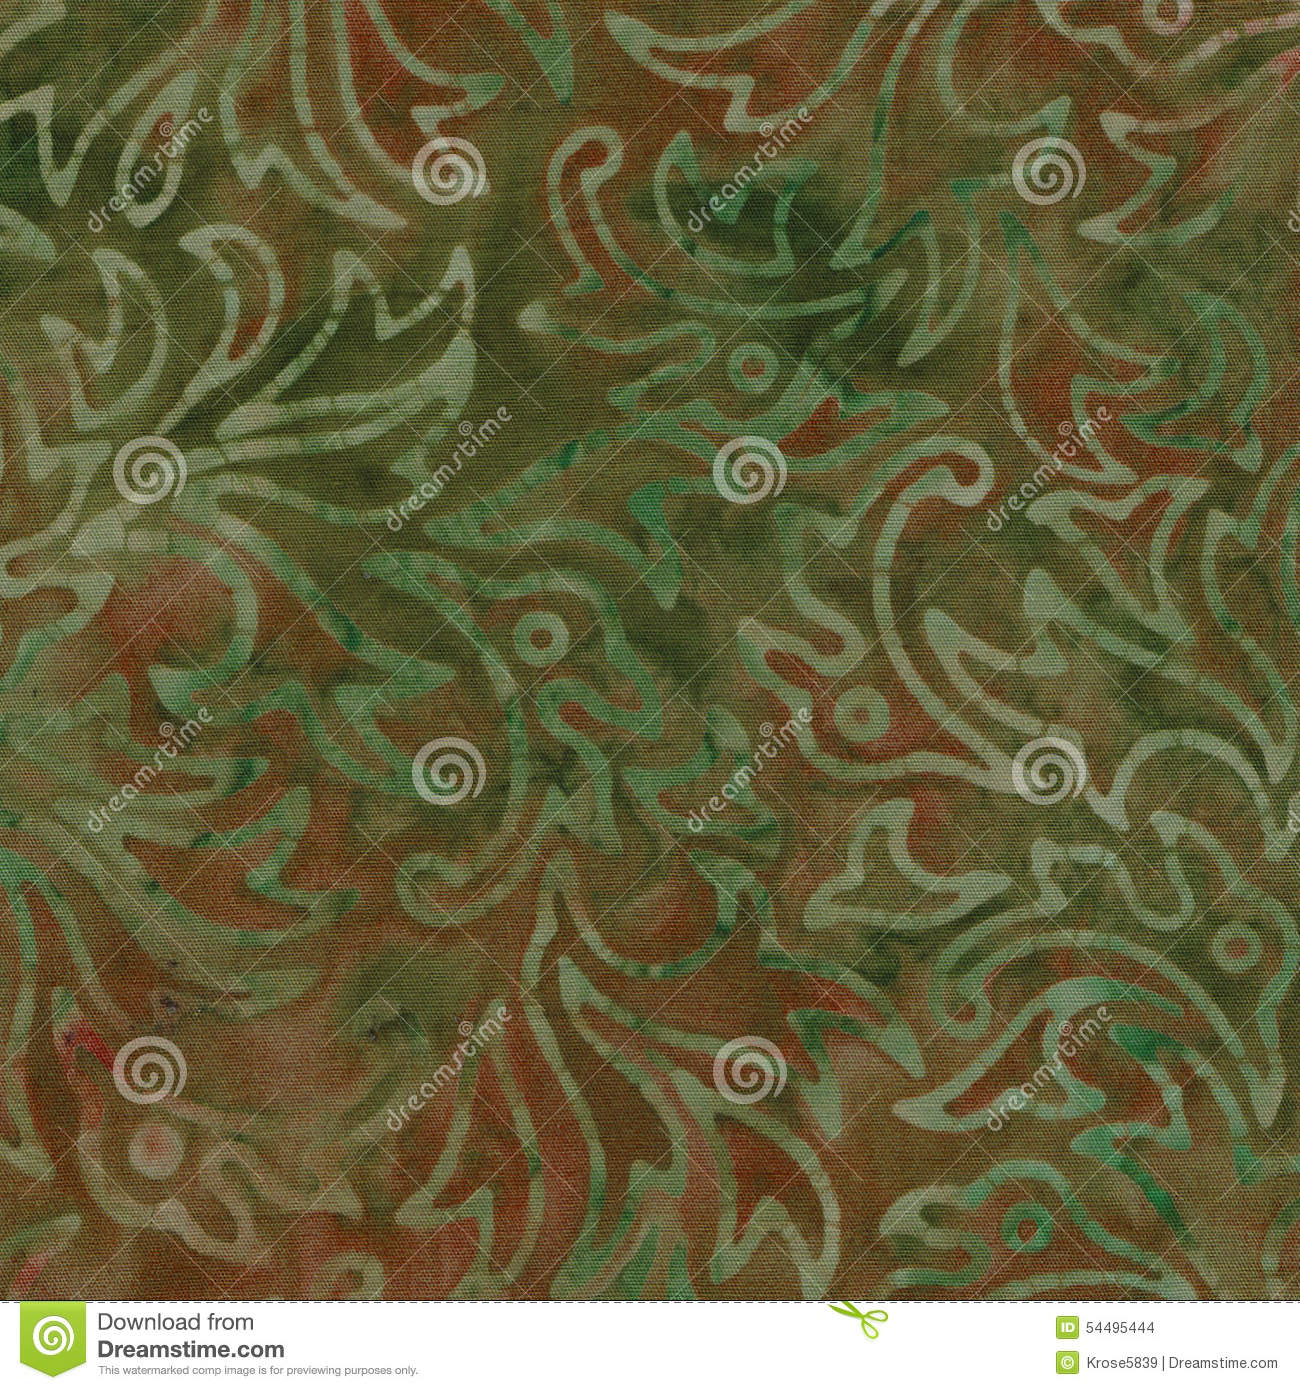 green and brown batik pattern with swirls and a fine cloth texture.